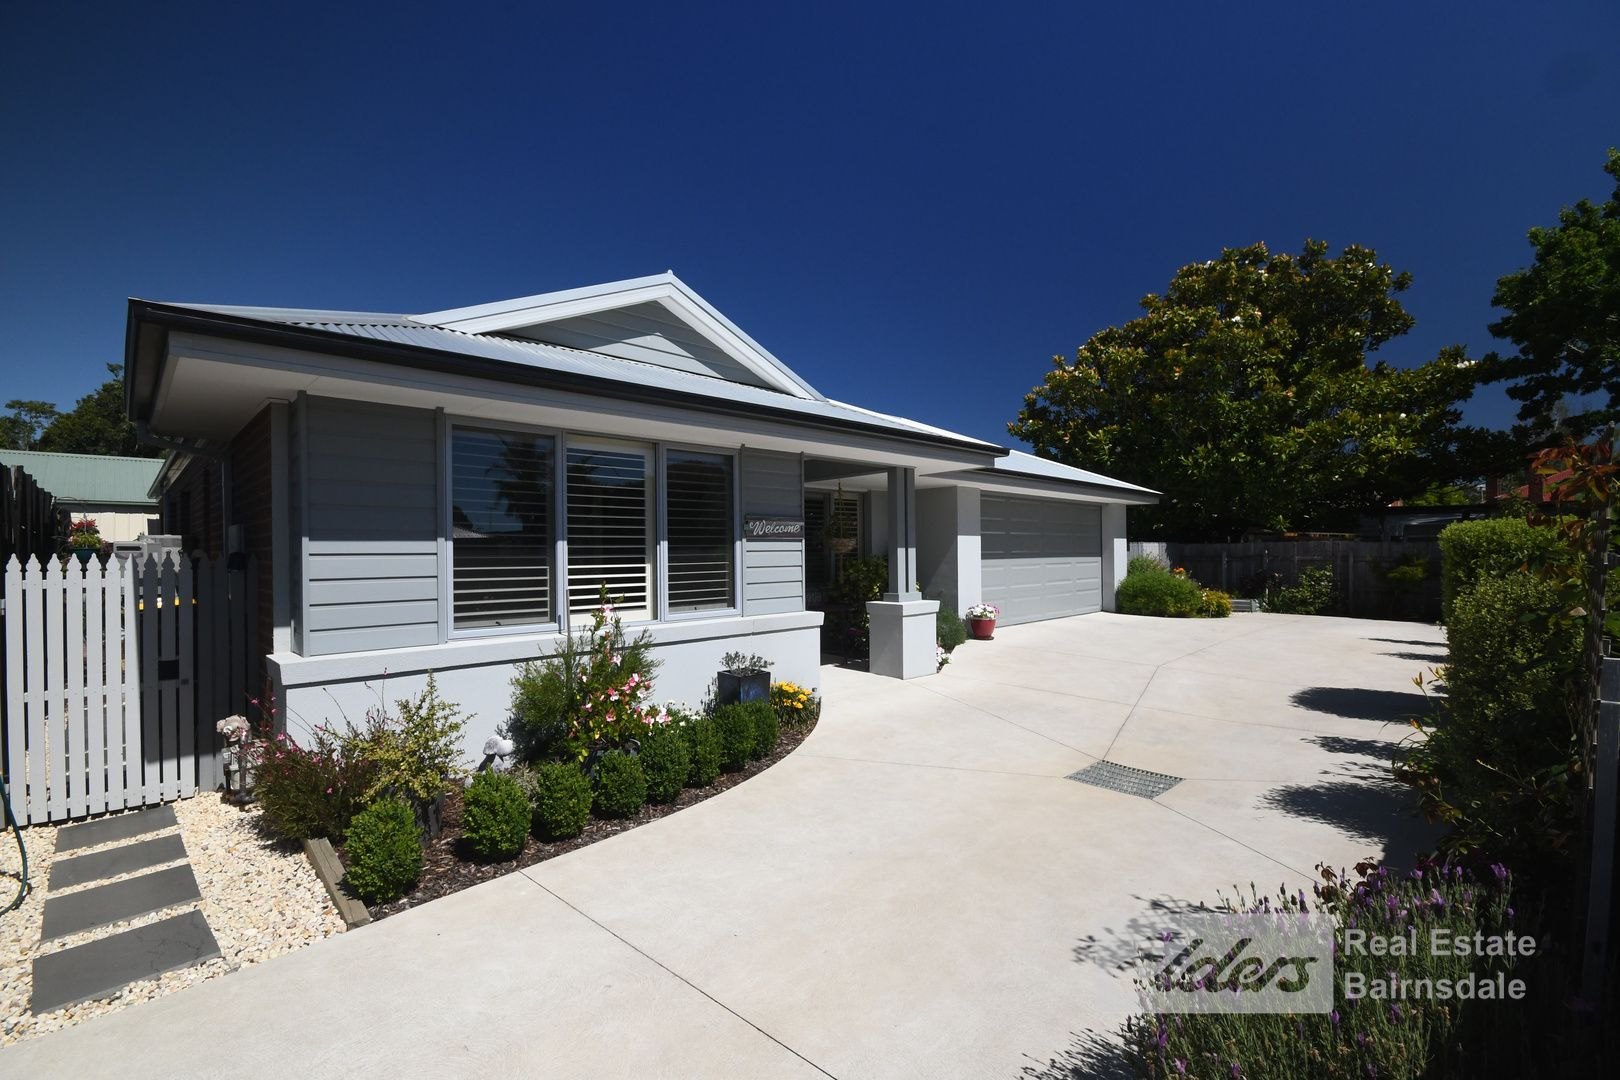 220A Nicholson Street, Bairnsdale VIC 3875, Image 0